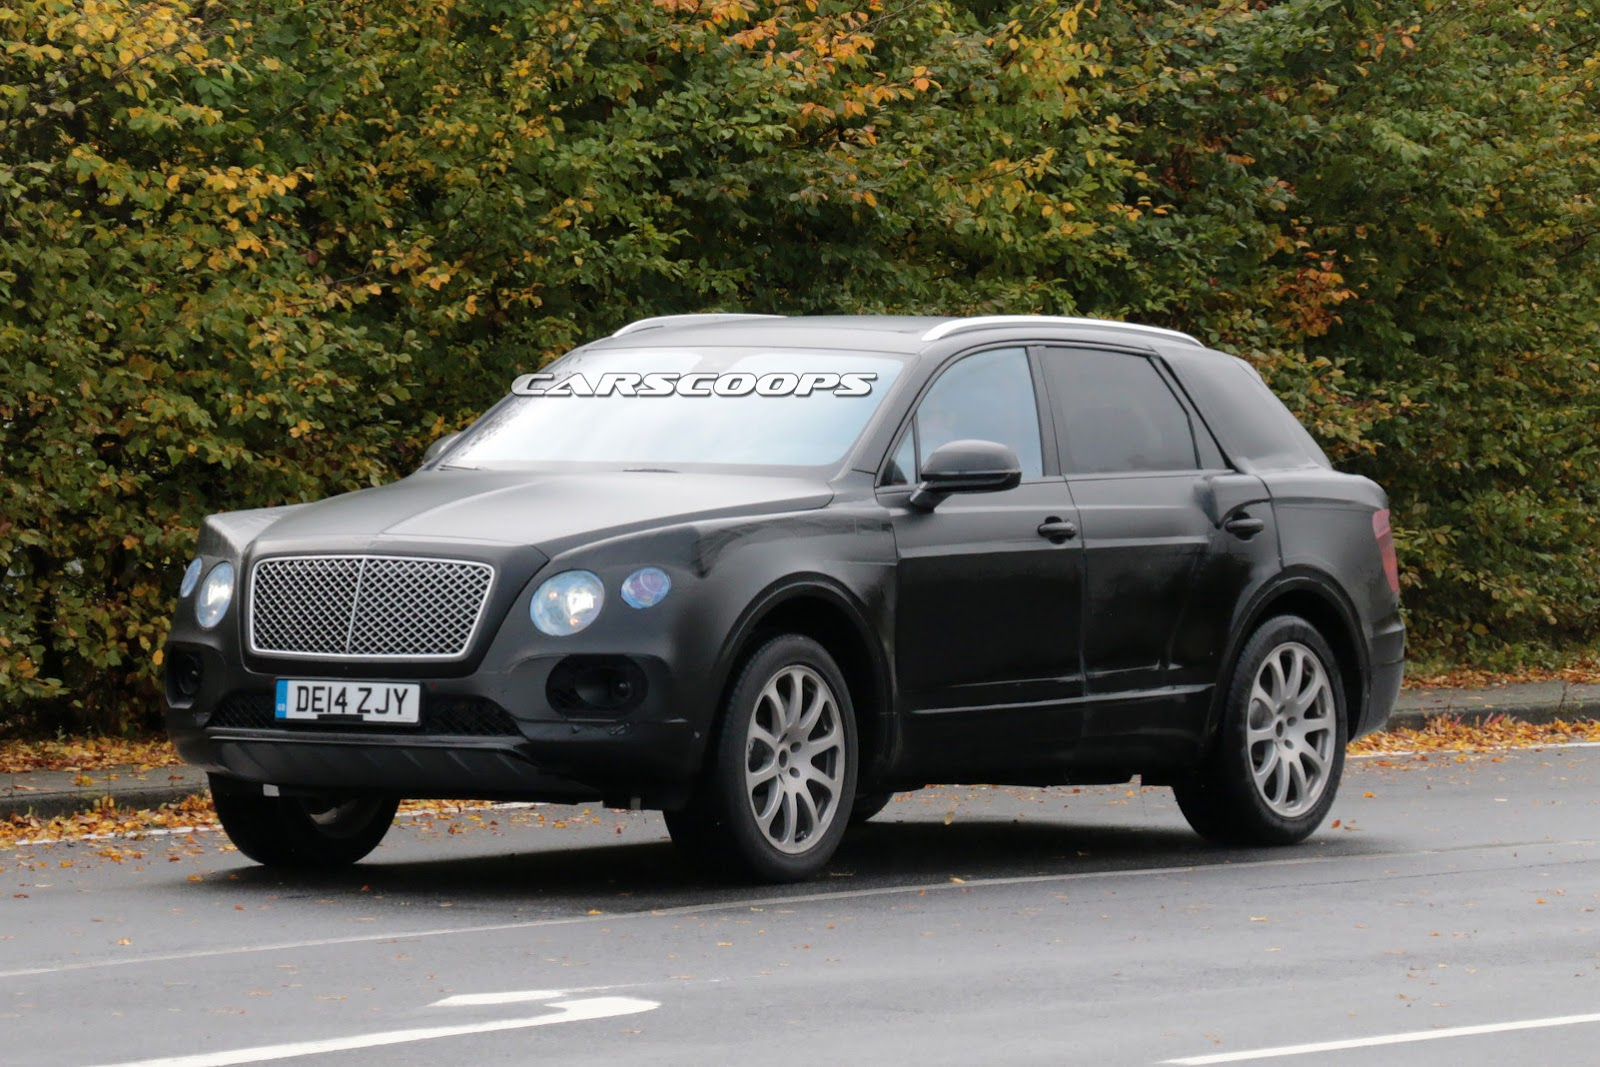 bentley 39 s 2017 suv spied testing with 6 0 liter w12 engine. Black Bedroom Furniture Sets. Home Design Ideas